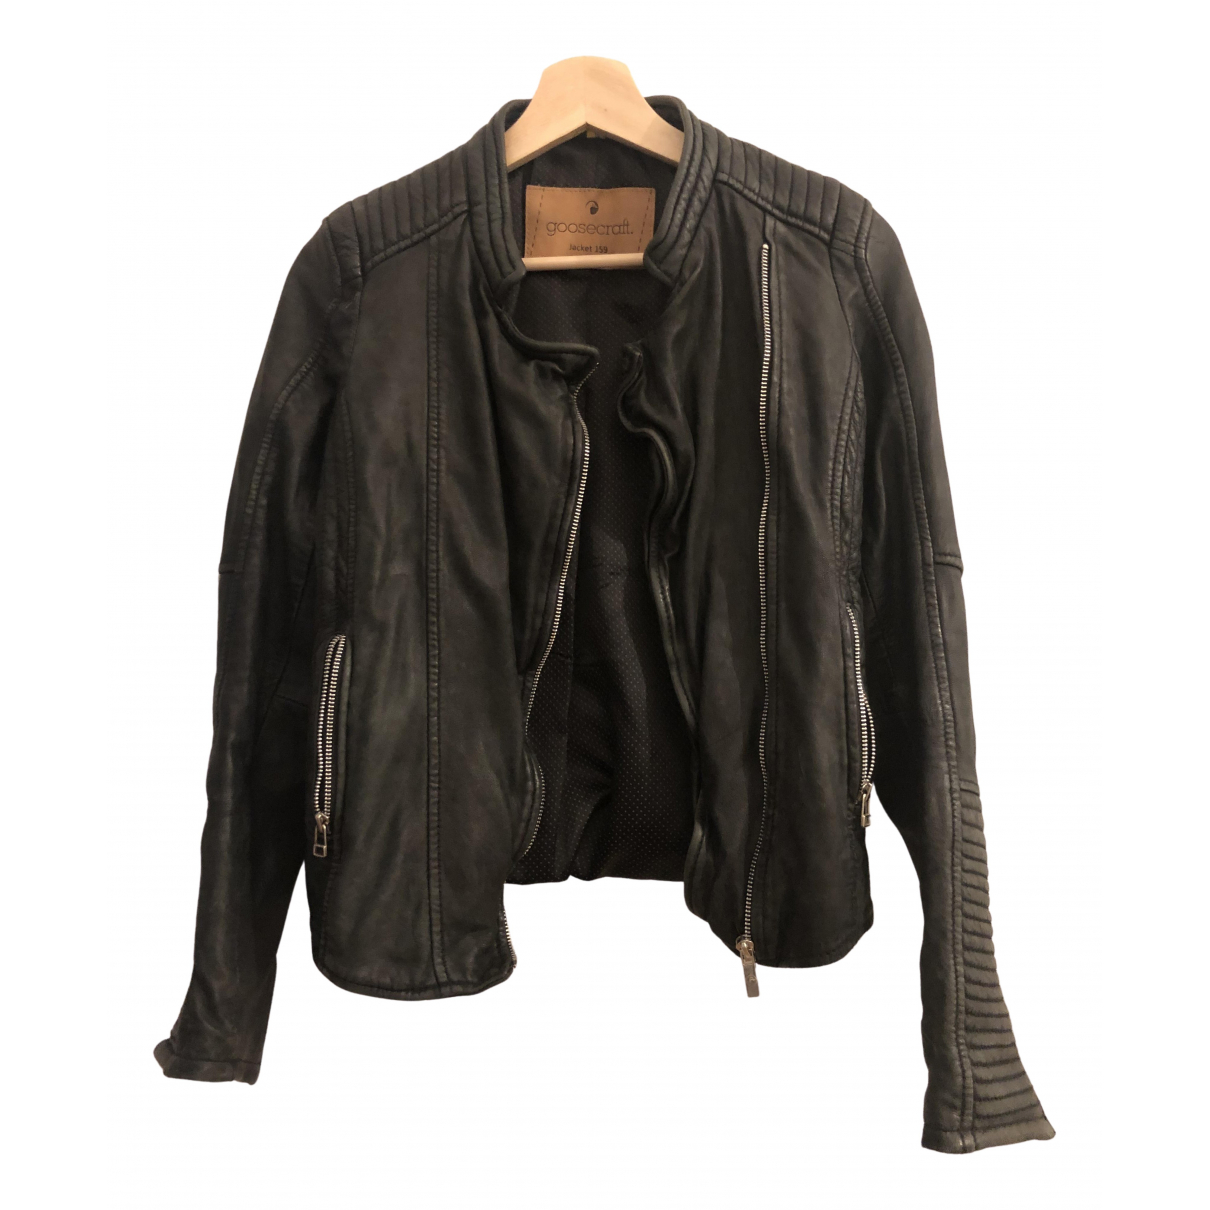 Goosecraft \N Black Leather Leather jacket for Women 36 IT